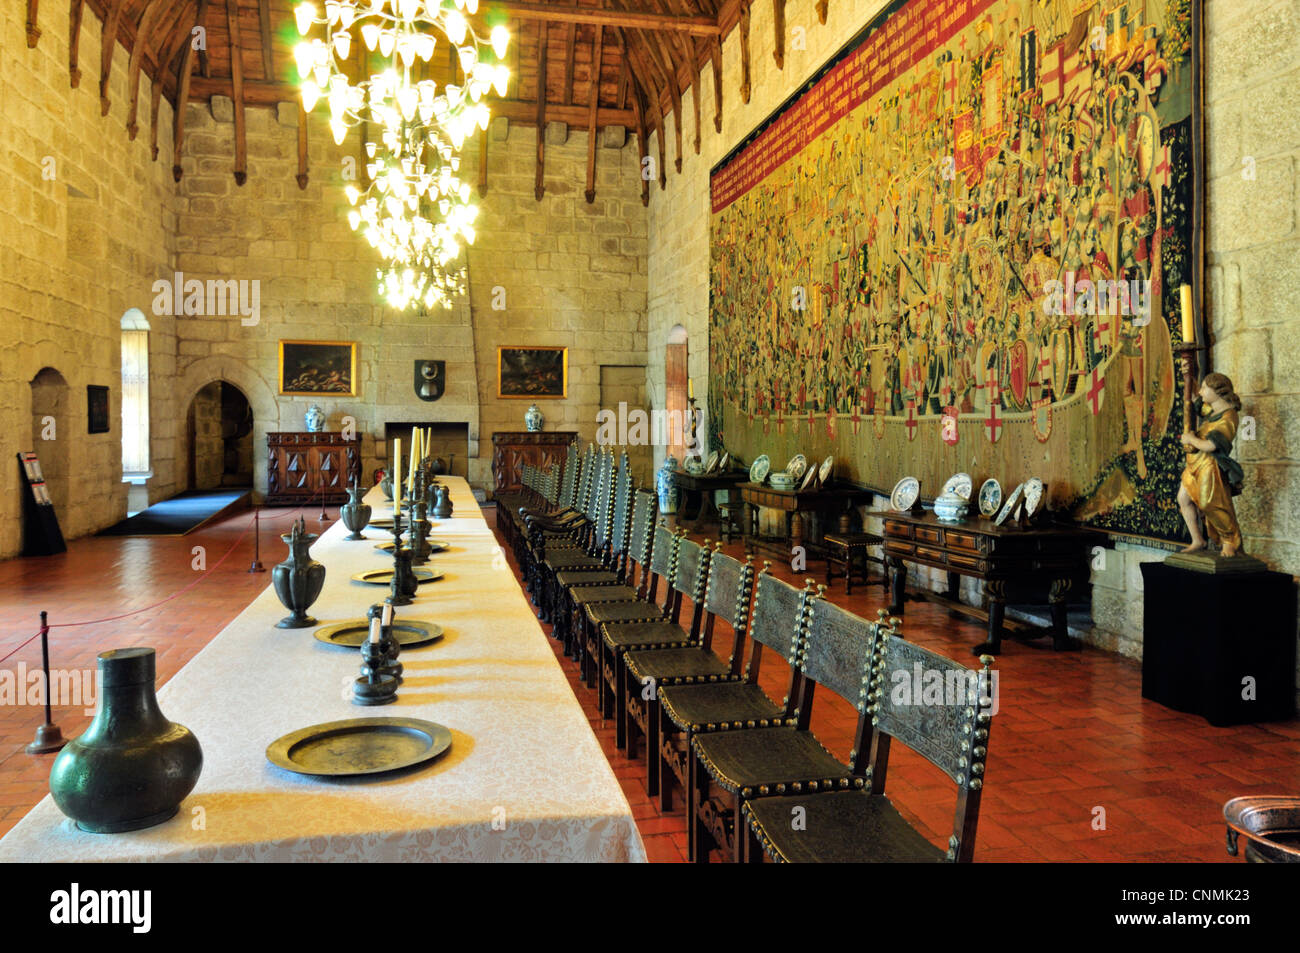 Medieval Banquet Table Stock Photos & Medieval Banquet Table